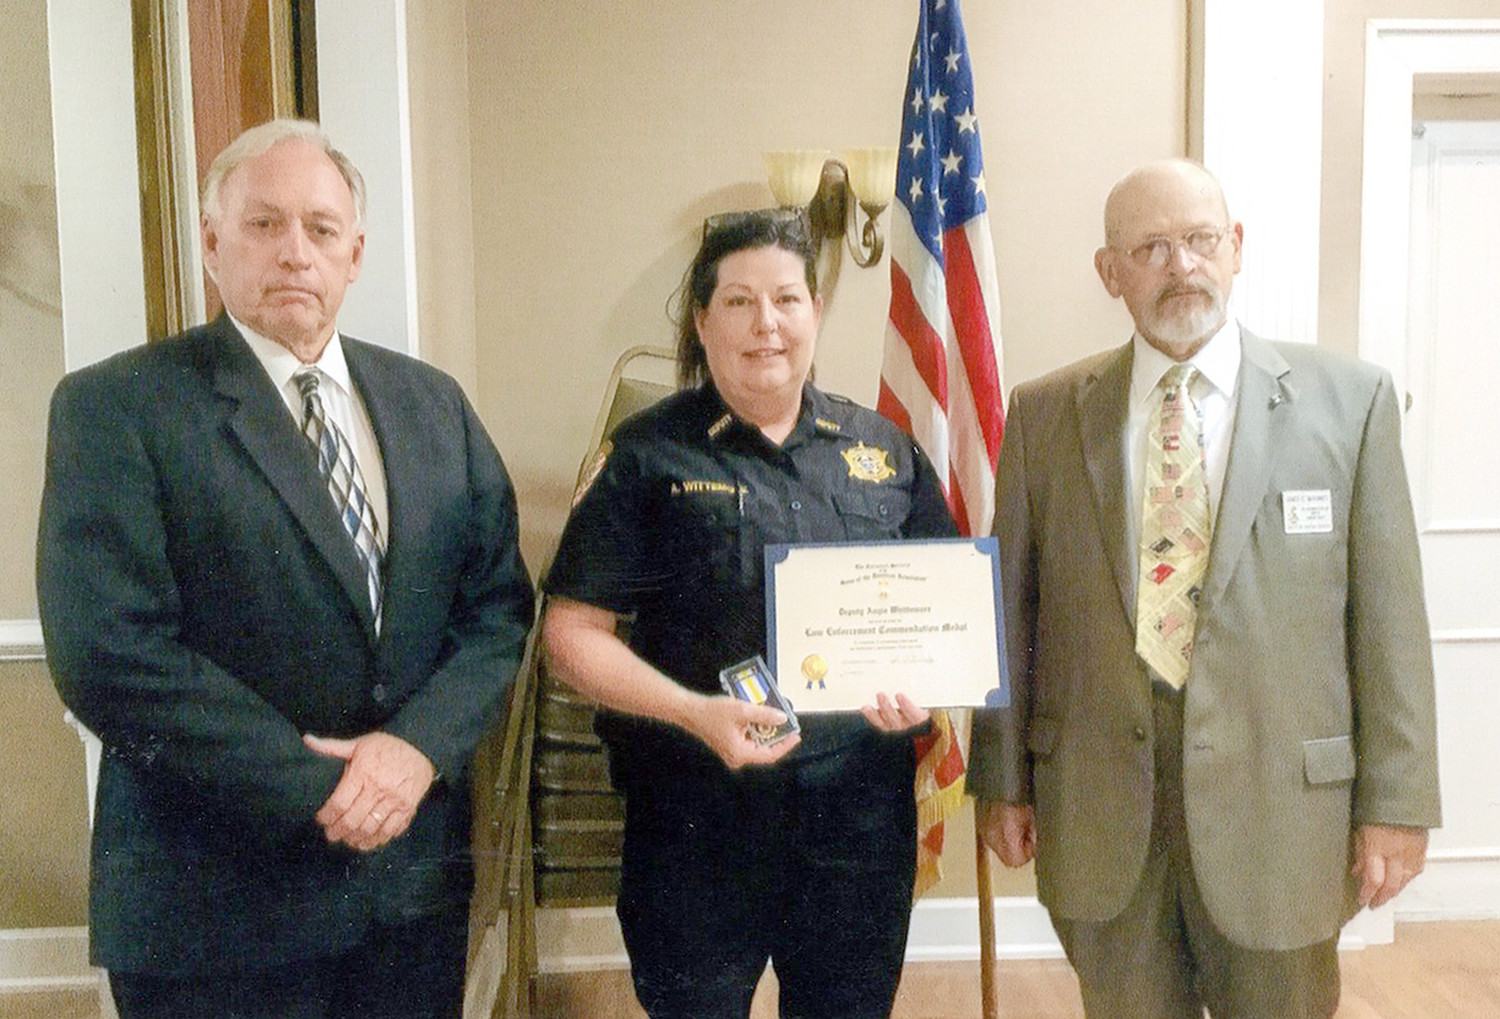 DEPUTY ANGIE WHITTEMORE, center, was recipient of the Col. Benjamin Cleveland Chapter of the Sons of the American Revolution Law Enforcement Commendation.  A member of the Bradley County Sheriff's Office, Whittemore  was presented the award by Dennis Goins and First Vice President Jim McKinney.